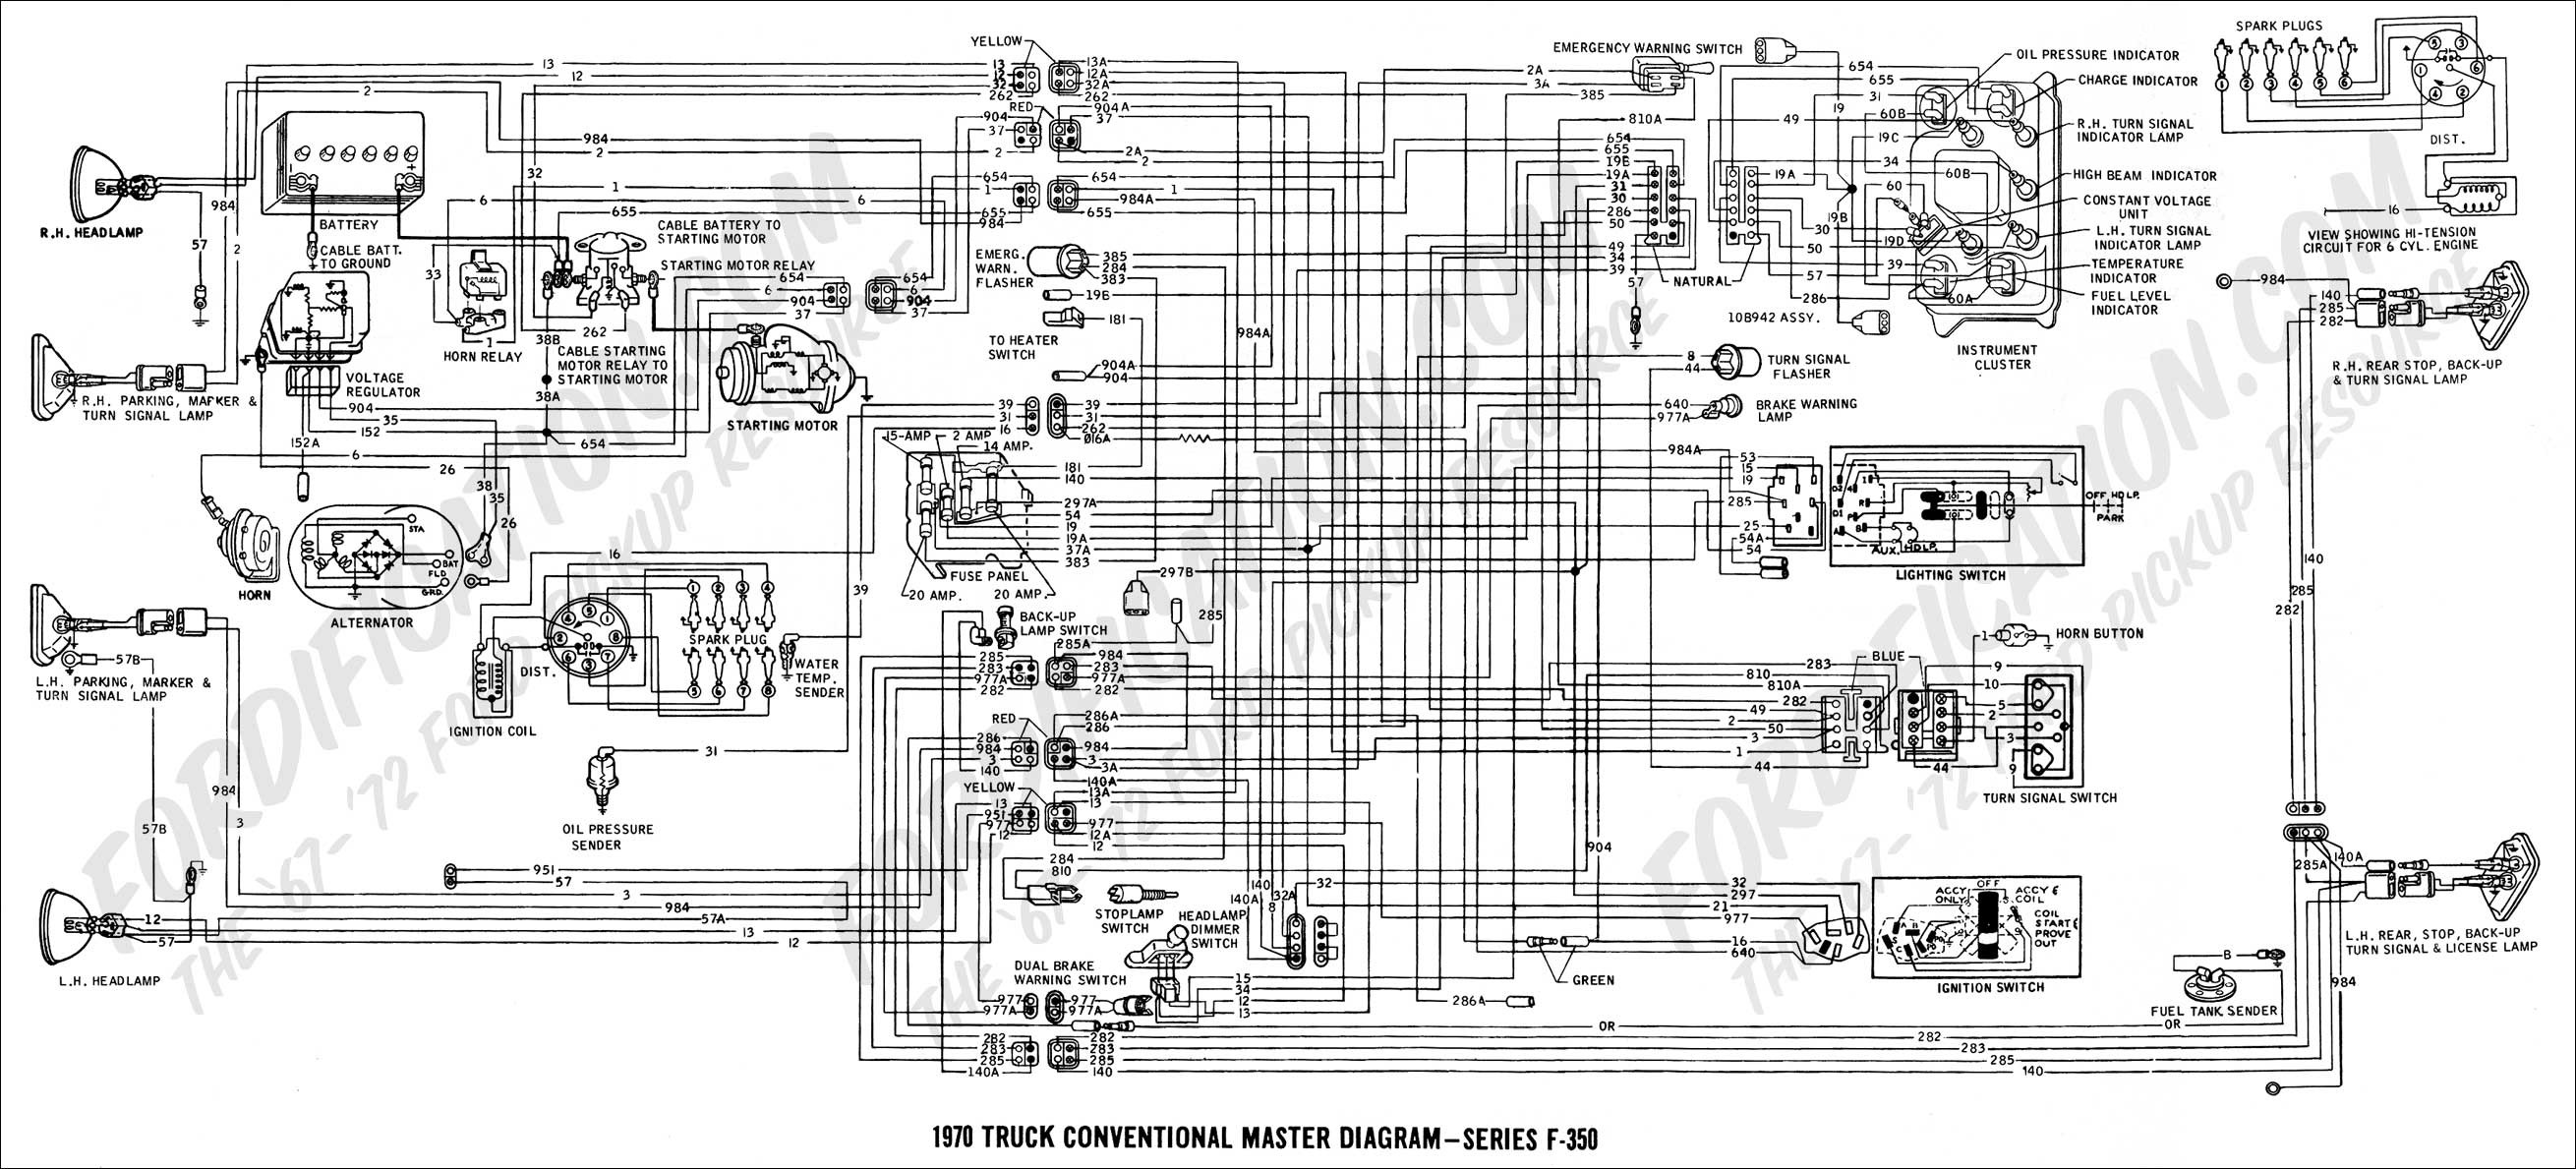 2006 ford Escape Engine Diagram 1987 ford Ranger Wiring Diagram Also 2006  ford Escape Fuse Box